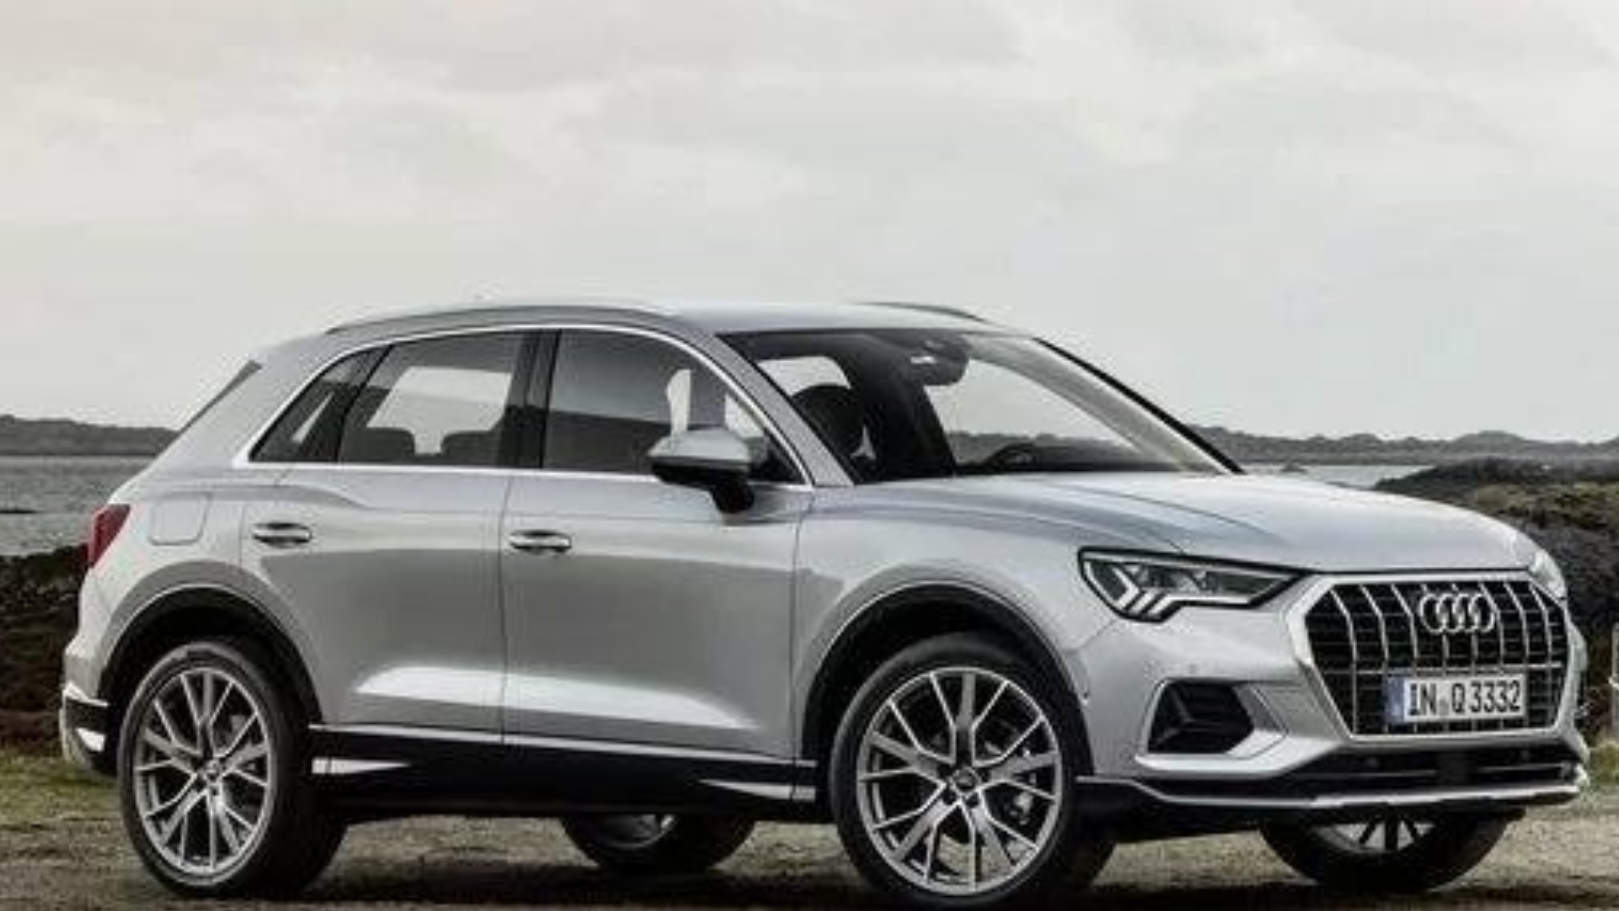 2019 audi q3 suv photos leaked ahead of global debut today volvo xc40 rival. Black Bedroom Furniture Sets. Home Design Ideas